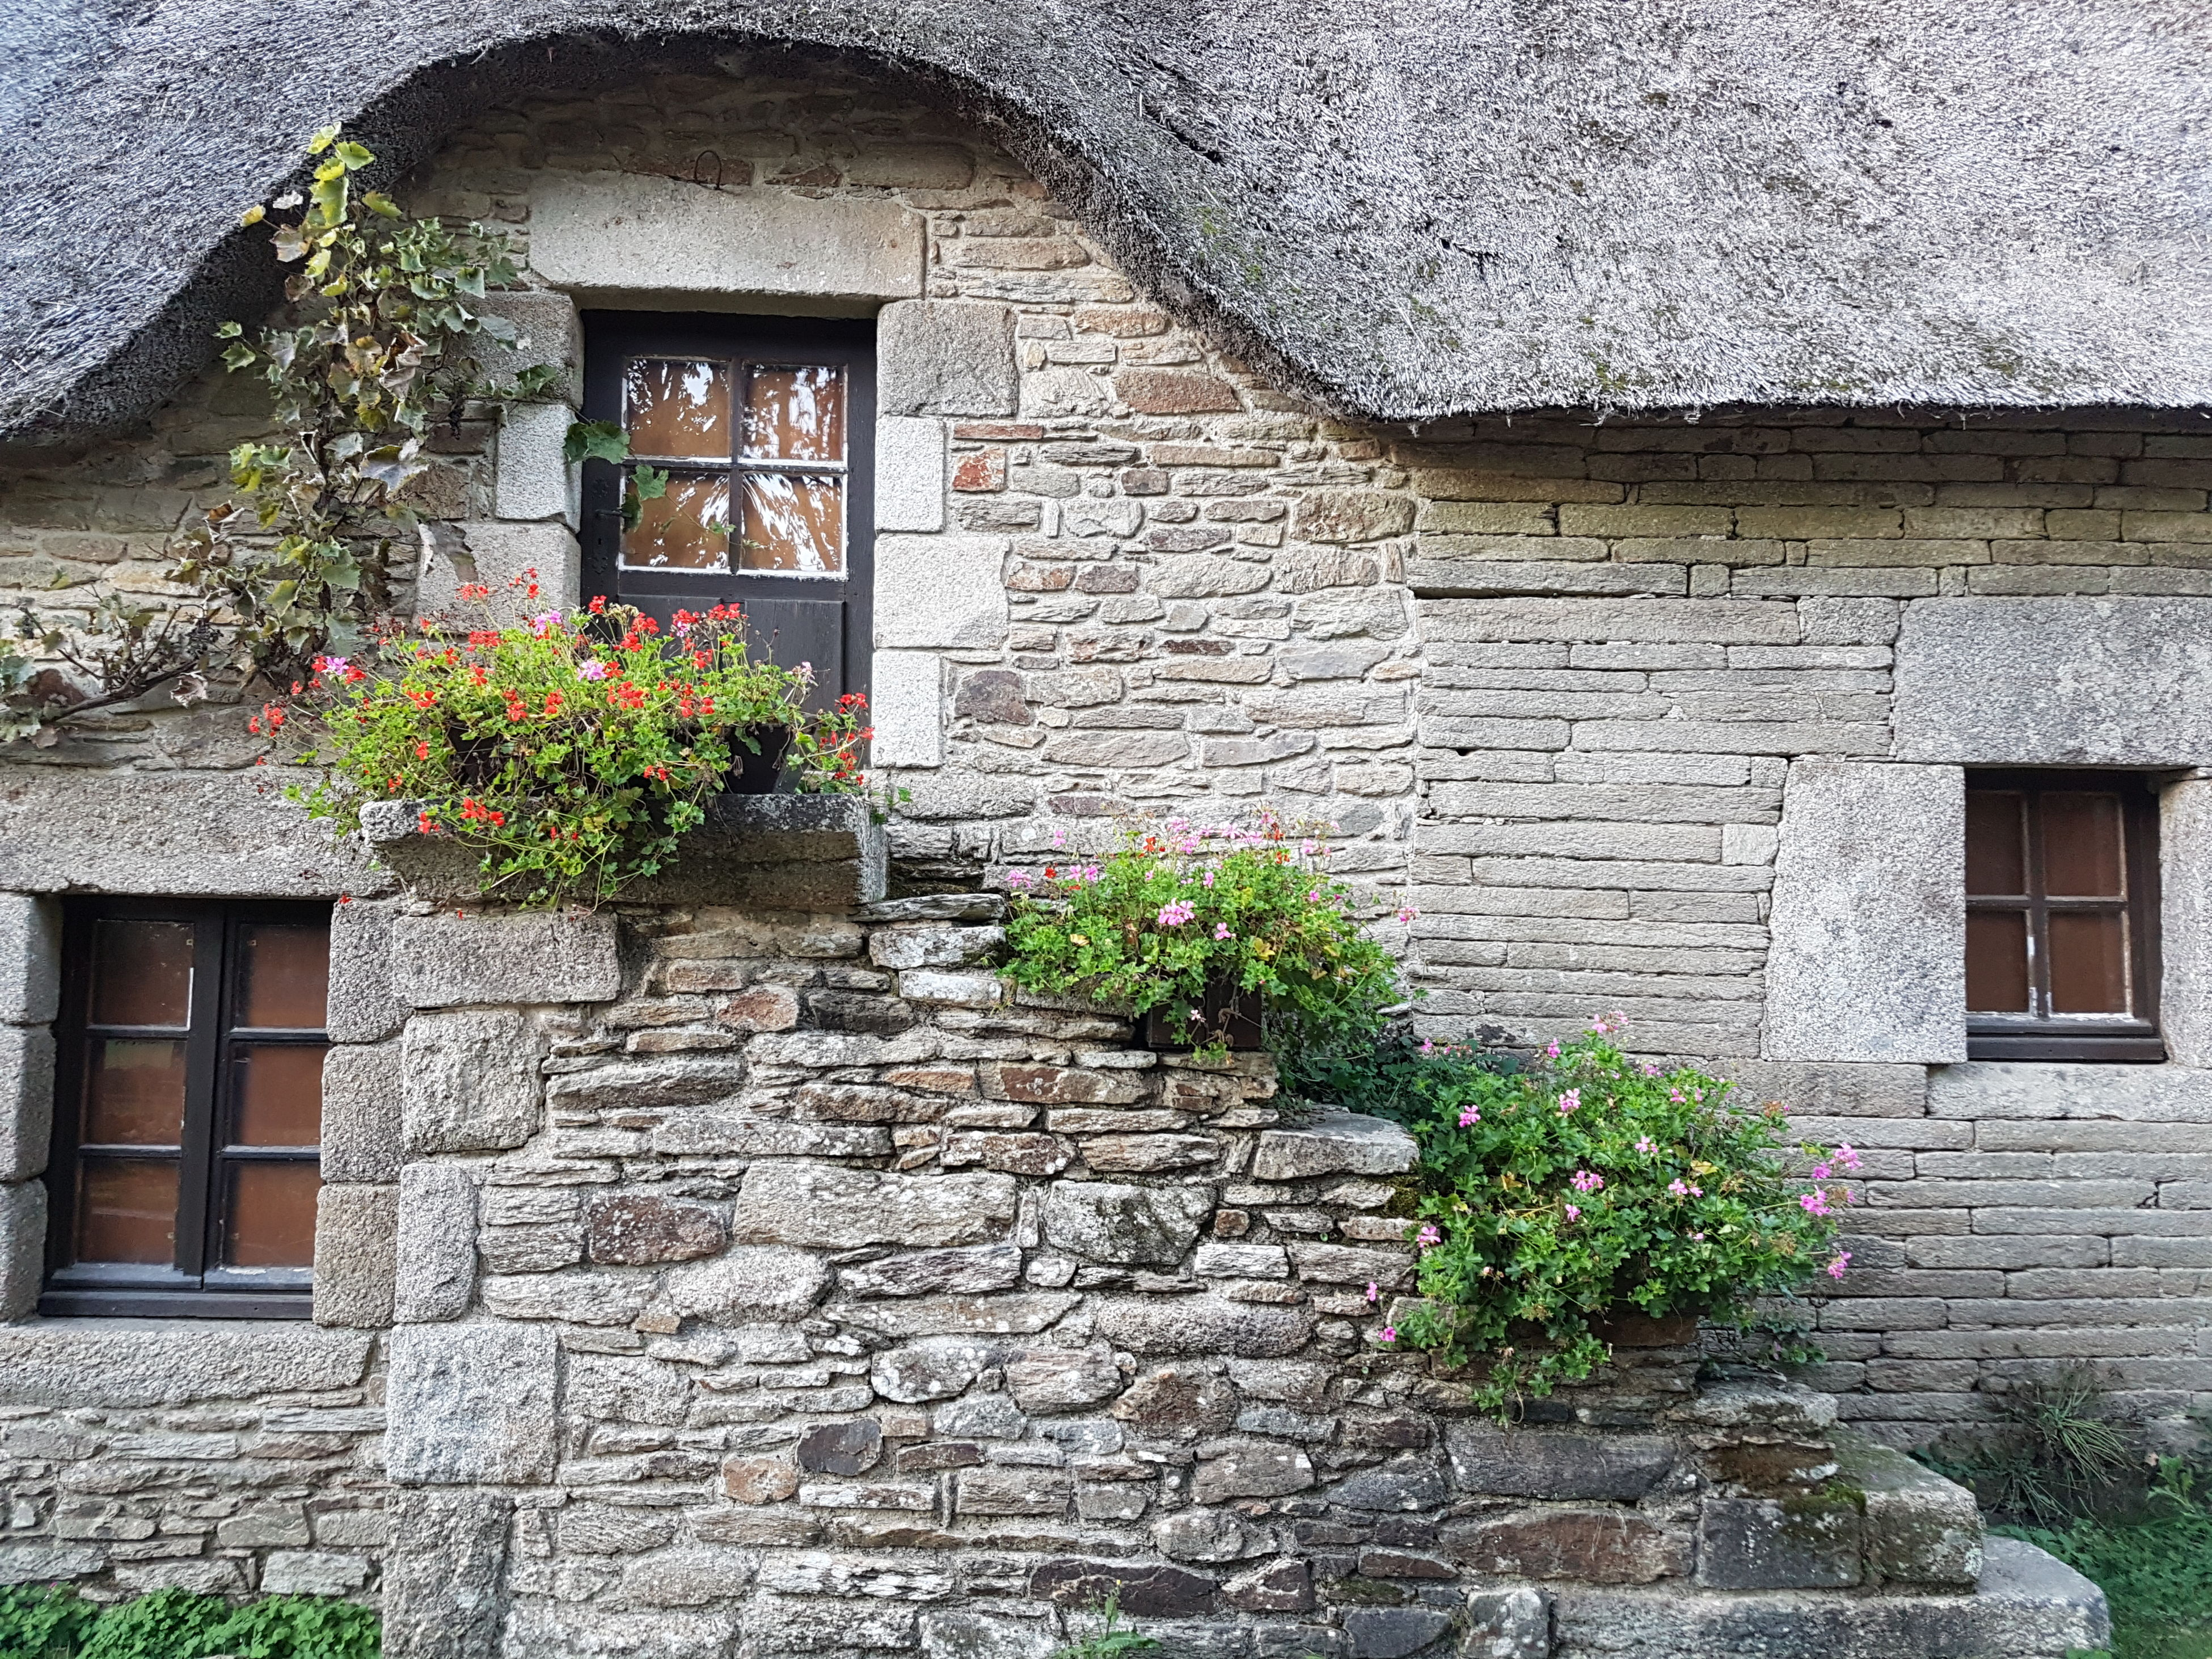 built structure, building exterior, architecture, window, flower, no people, plant, outdoors, ivy, tree, day, window box, creeper plant, freshness, nature